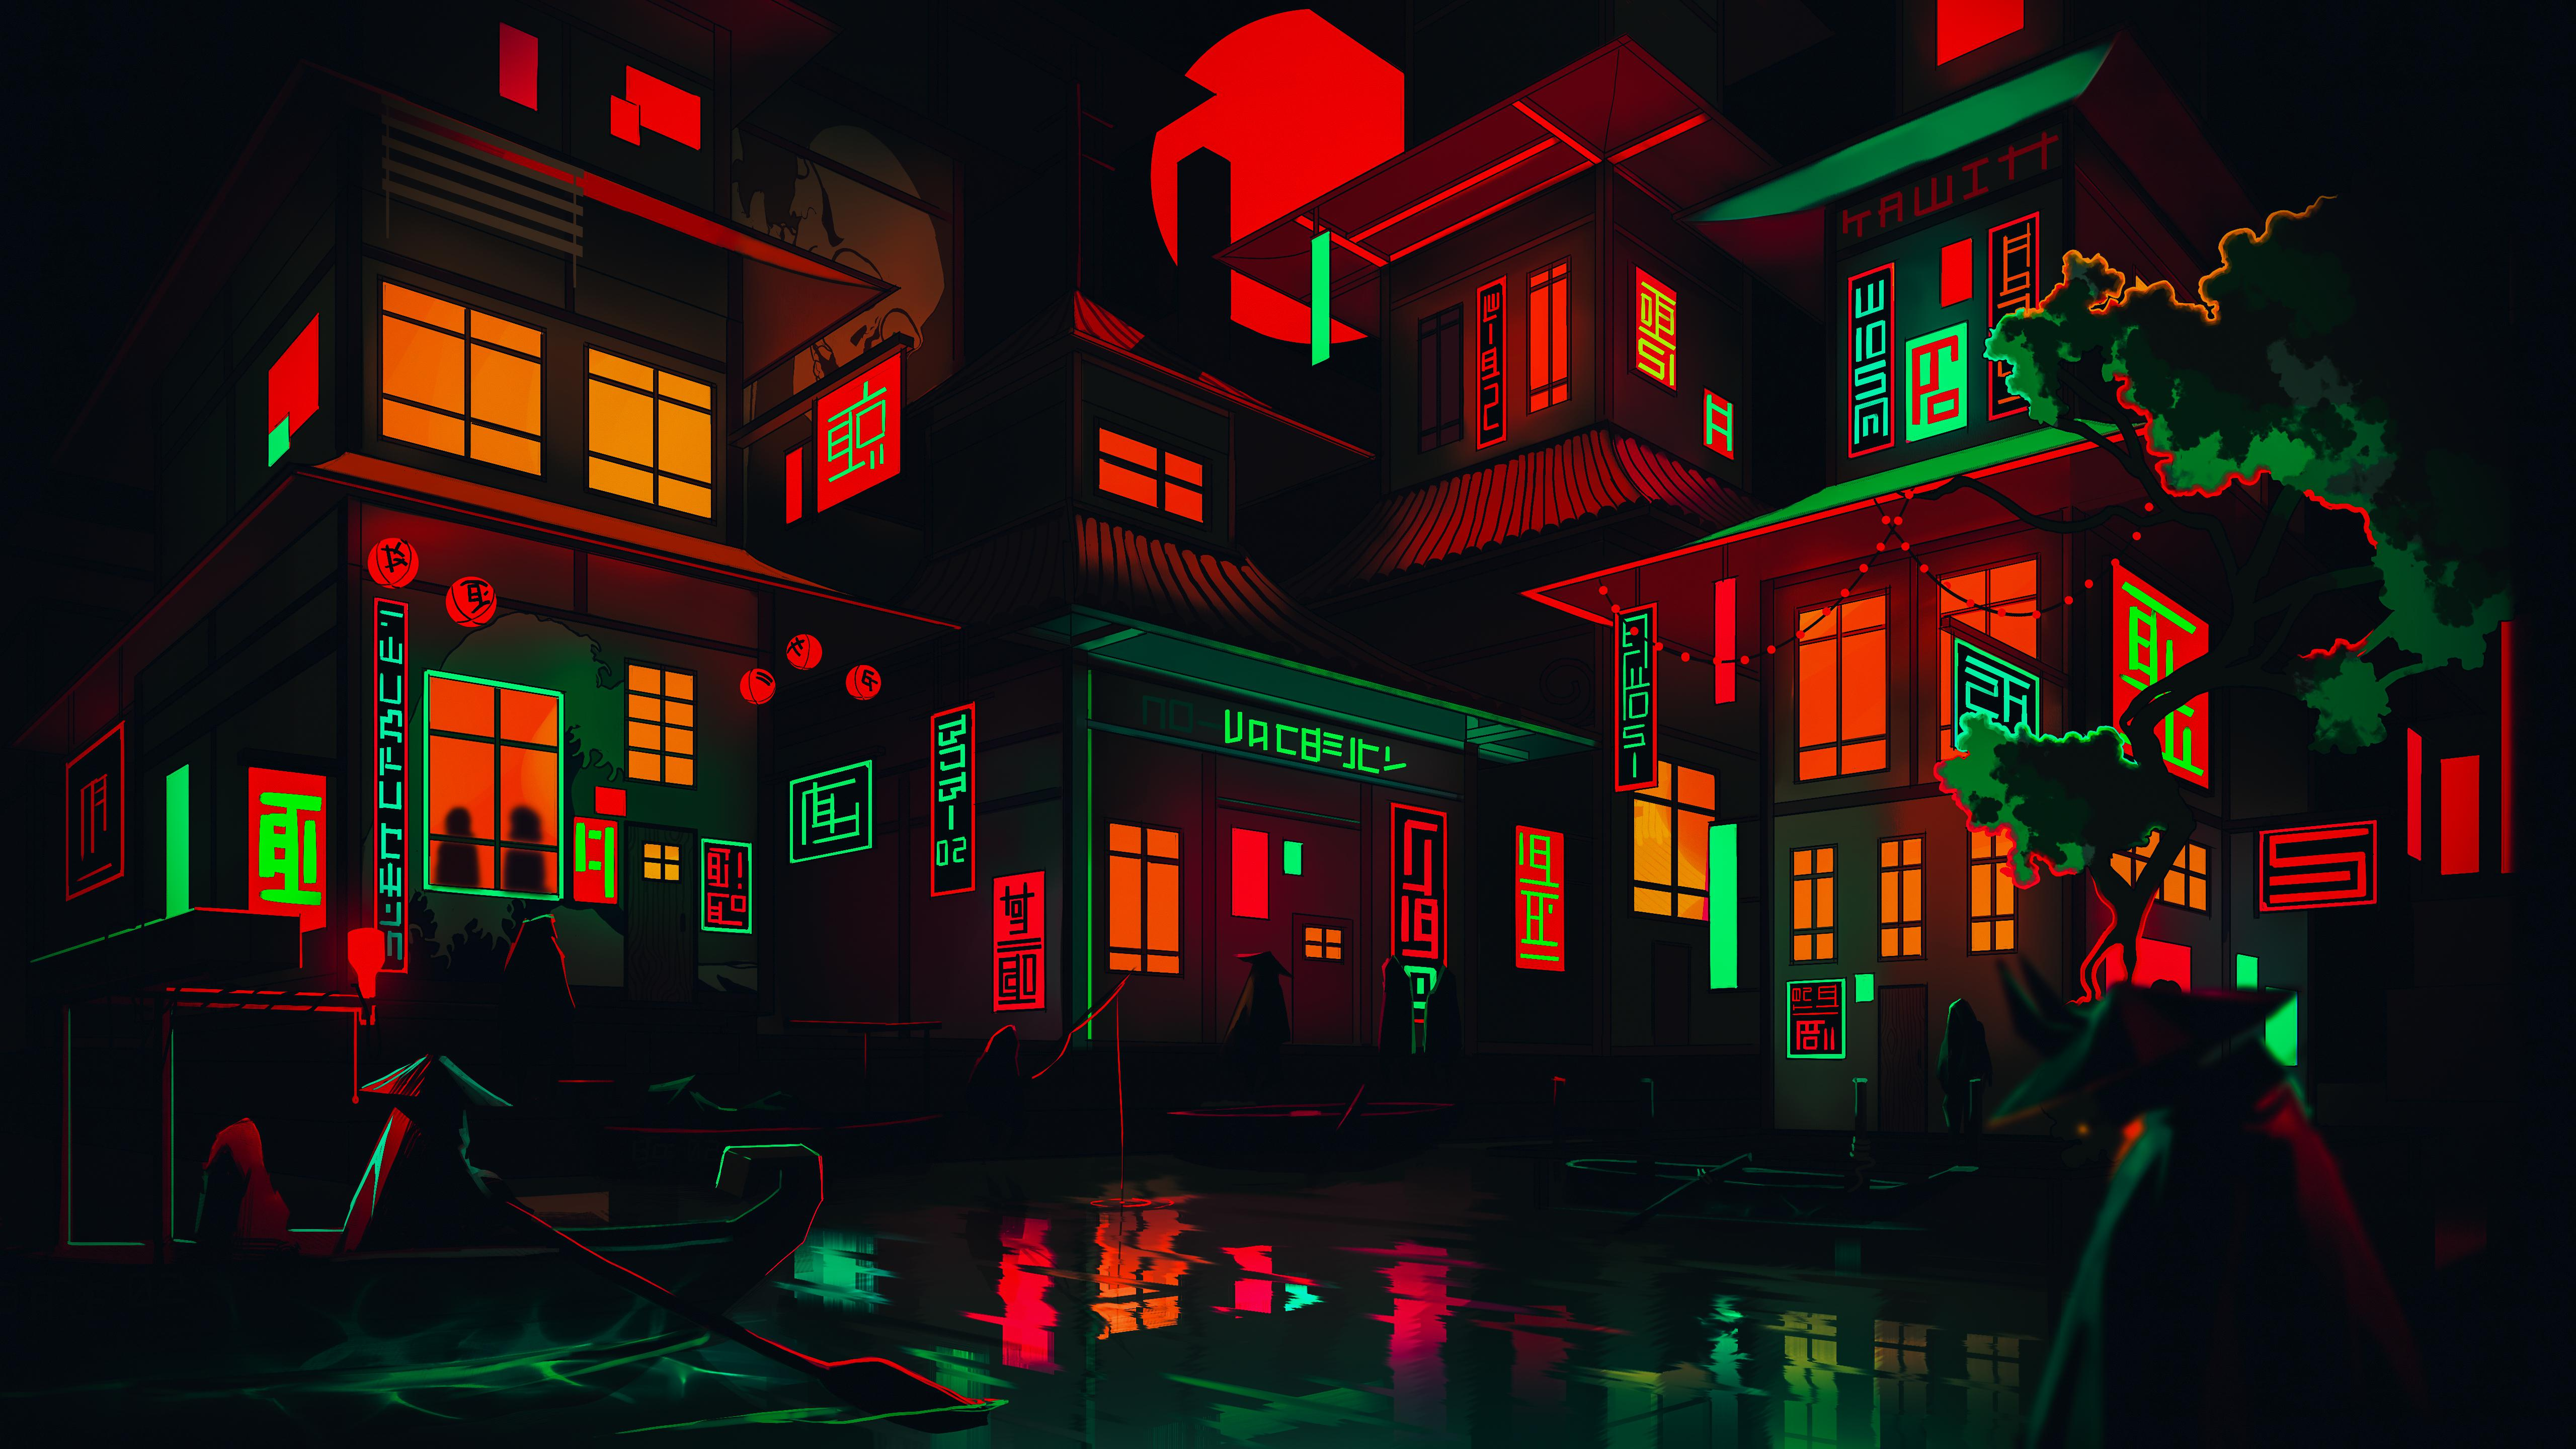 Neon Pc Wallpapers Wallpaper Cave